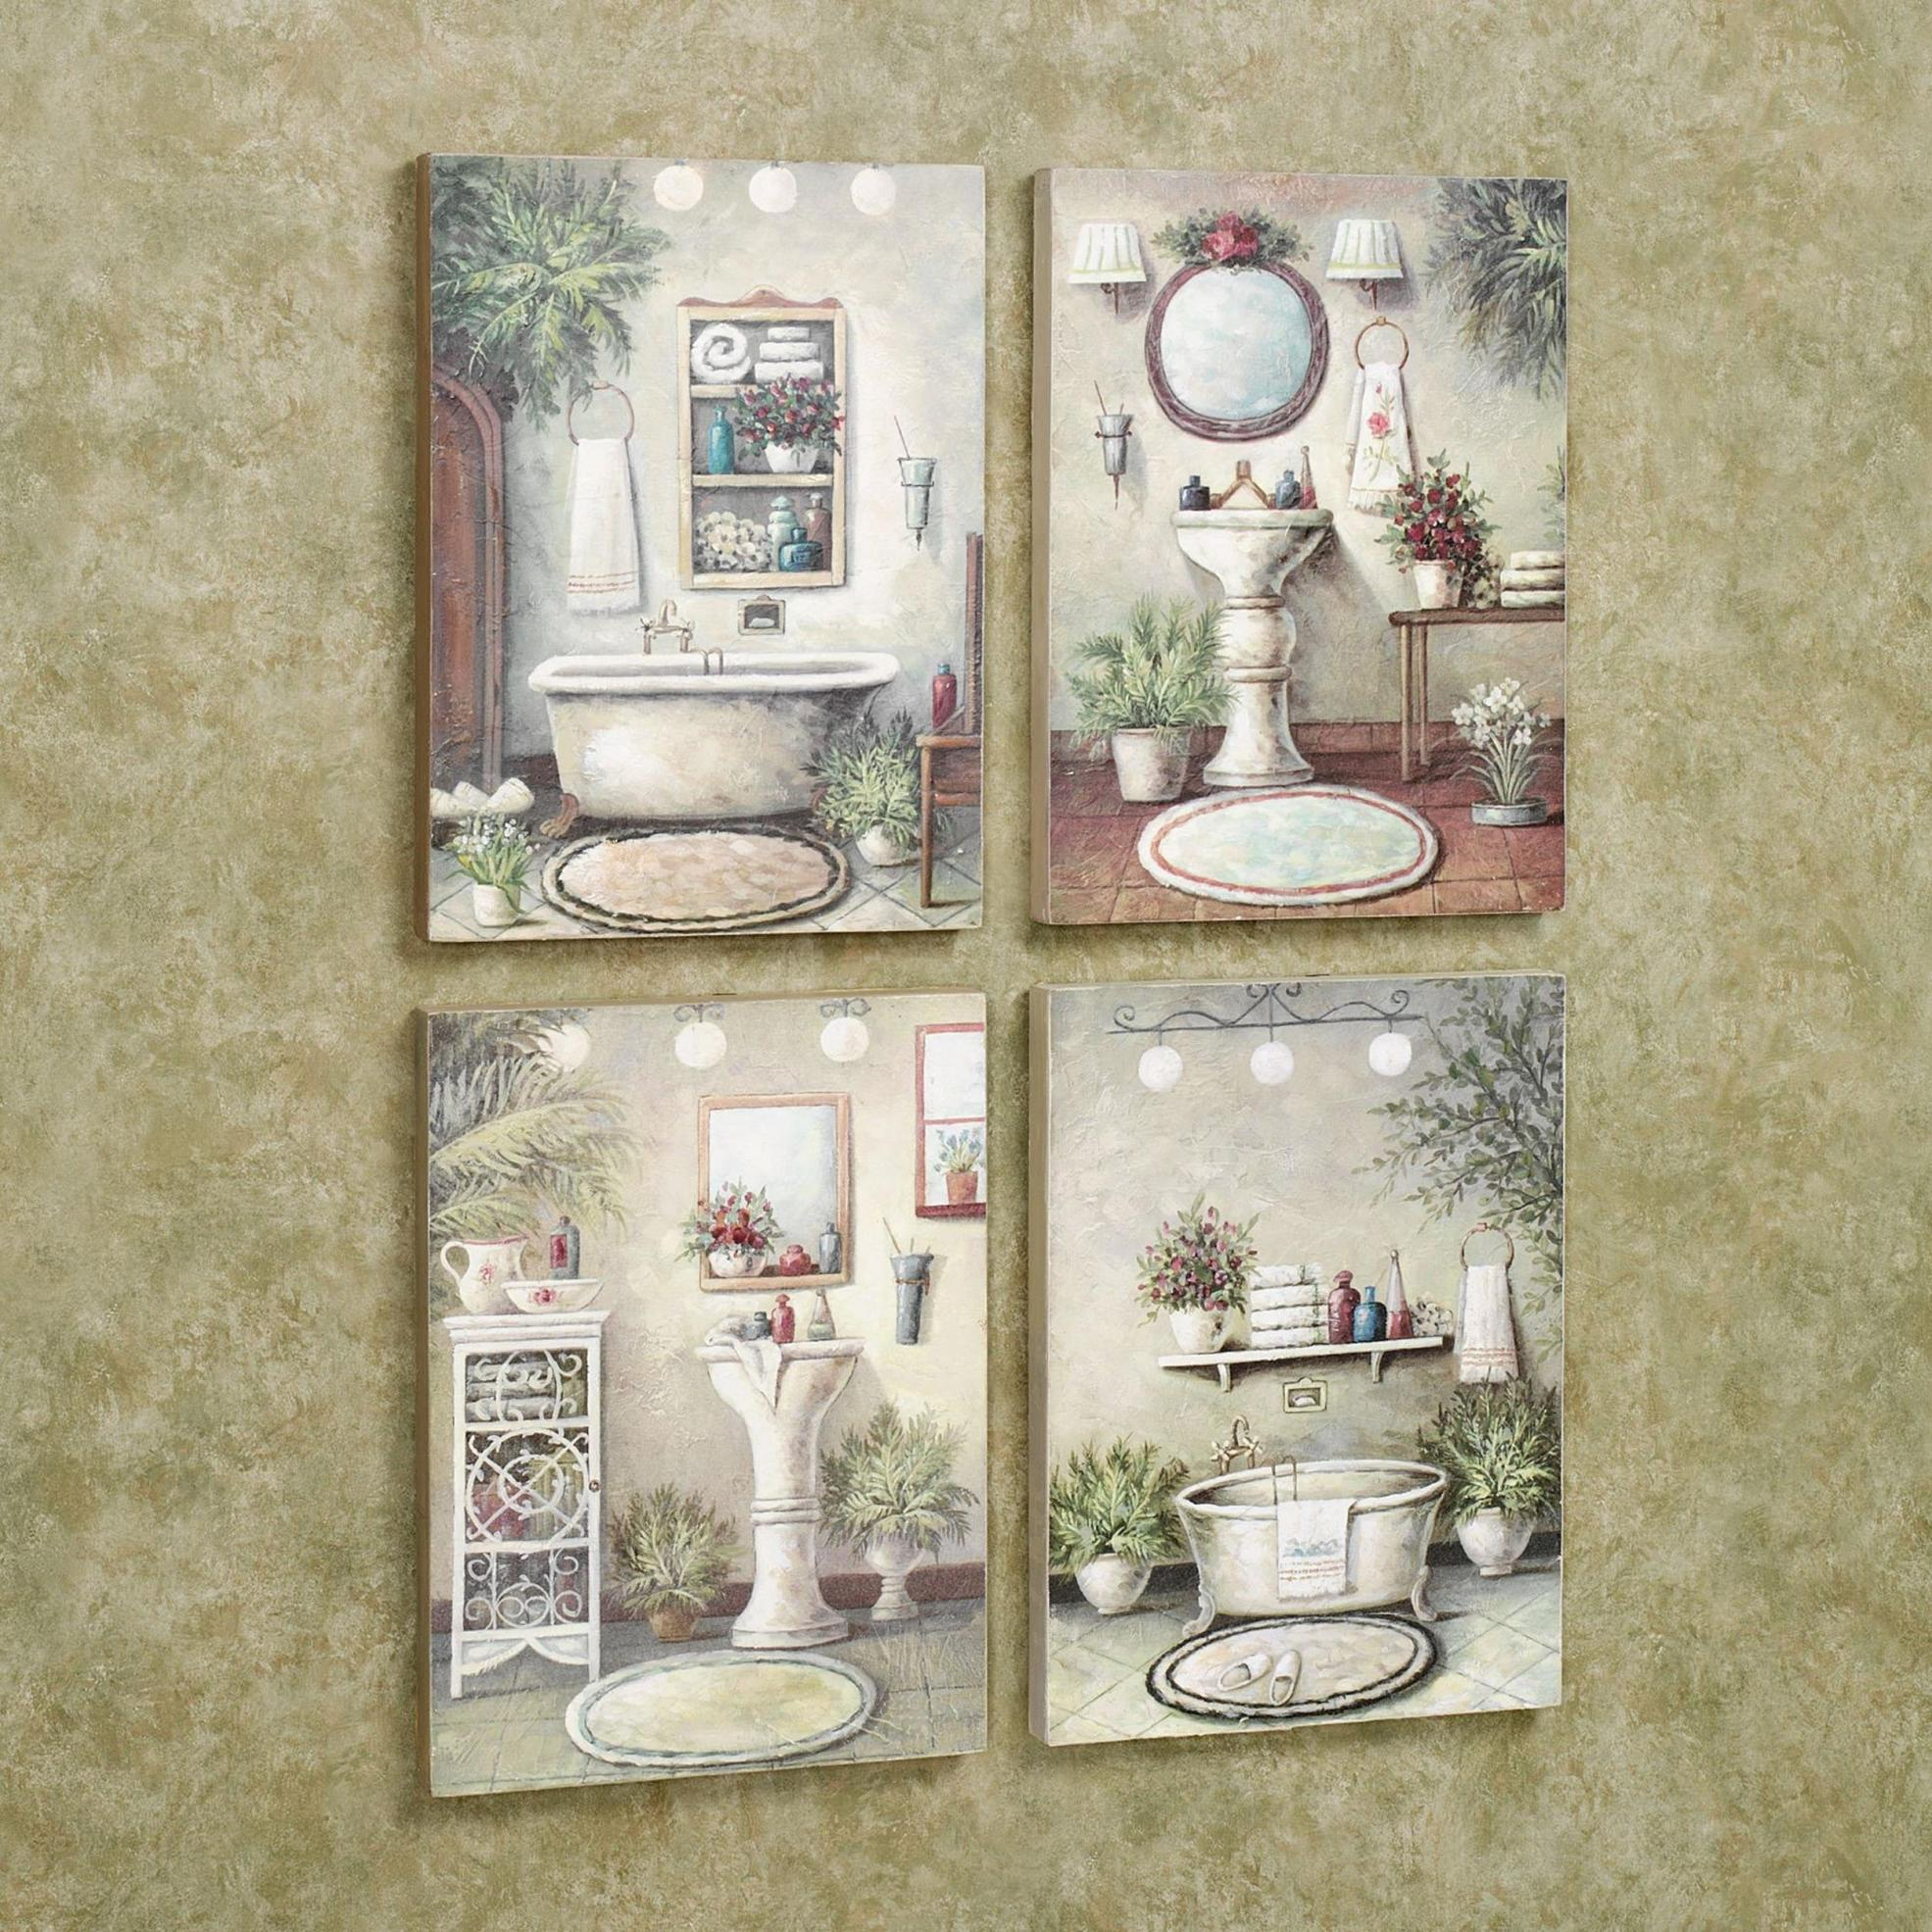 Best Bathroom Art Ideas For Your Sweet Bathroom 24